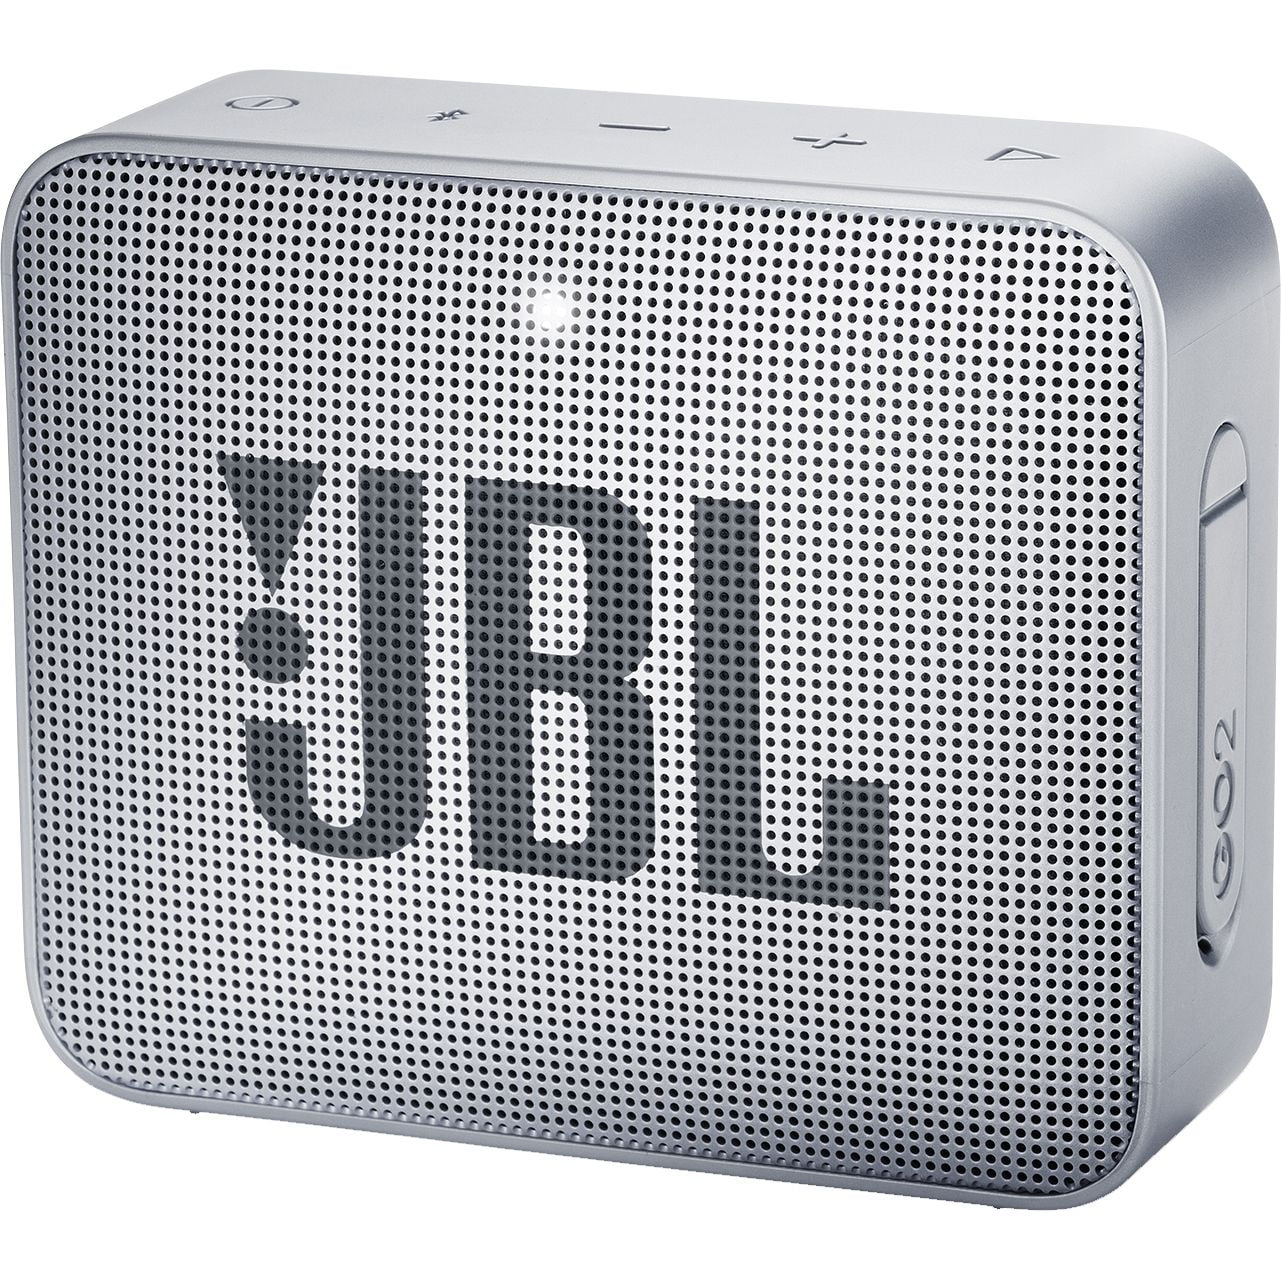 Boxa portabila JBL Go 2, Wireless, Bluetooth, IPX7 Waterproof, Ash Gray